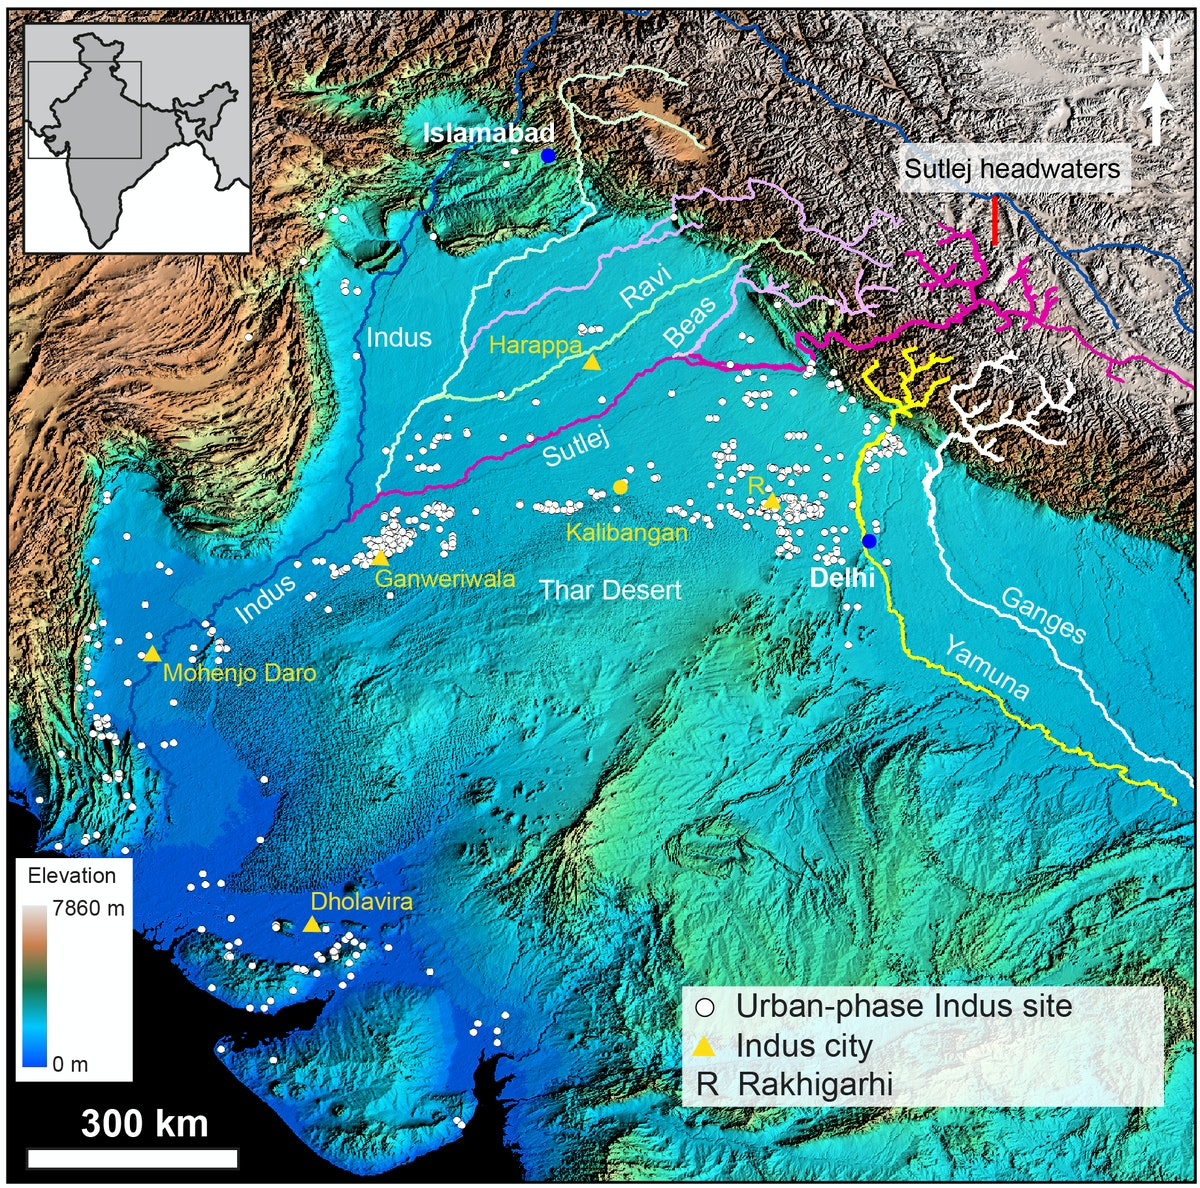 The lost river and the Indus Civilisation — Shorthand Social K On Indus River Map on krishna river on map, aral sea on map, irrawaddy river on map, japan on map, persian gulf on map, deccan plateau on map, jordan river on map, himalayan mountains on map, bangladesh on map, kashmir on map, gulf of khambhat on map, gobi desert on map, ganges river on map, indian ocean on map, himalayas on map, yellow river on map, great indian desert on map, yangzte river on map, eastern ghats on map, lena river on map,